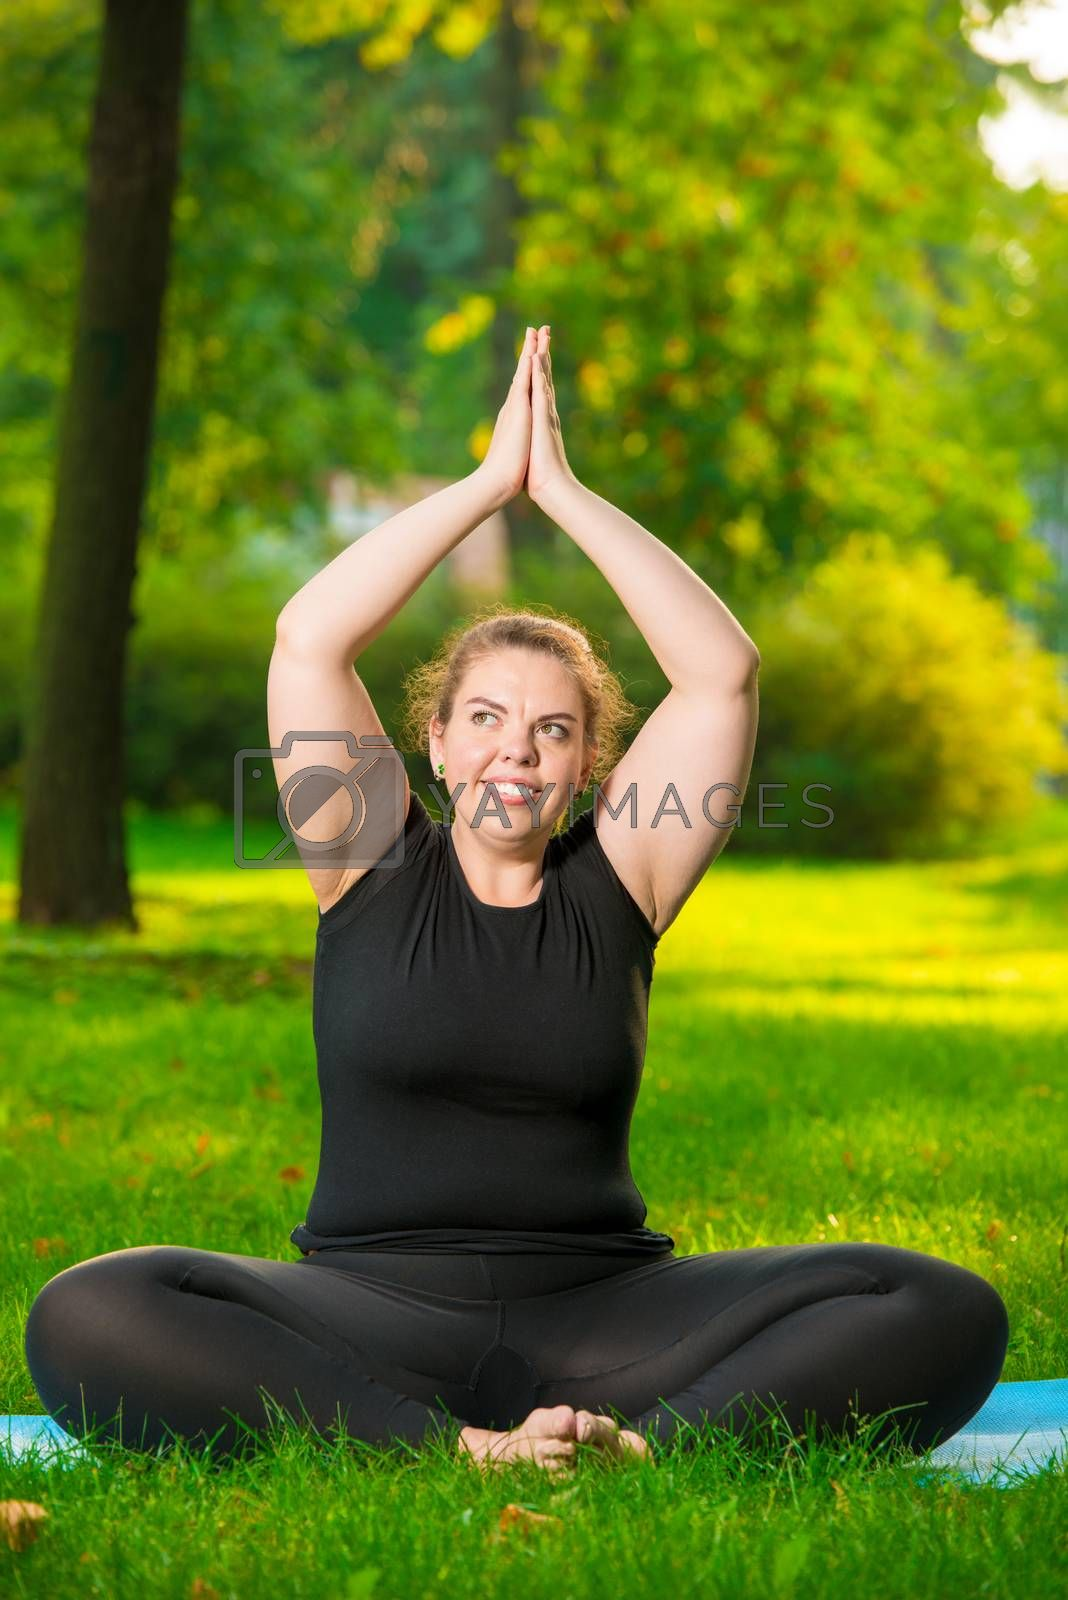 fat woman doing yoga in the park in the lotus position by Labunskiy K.